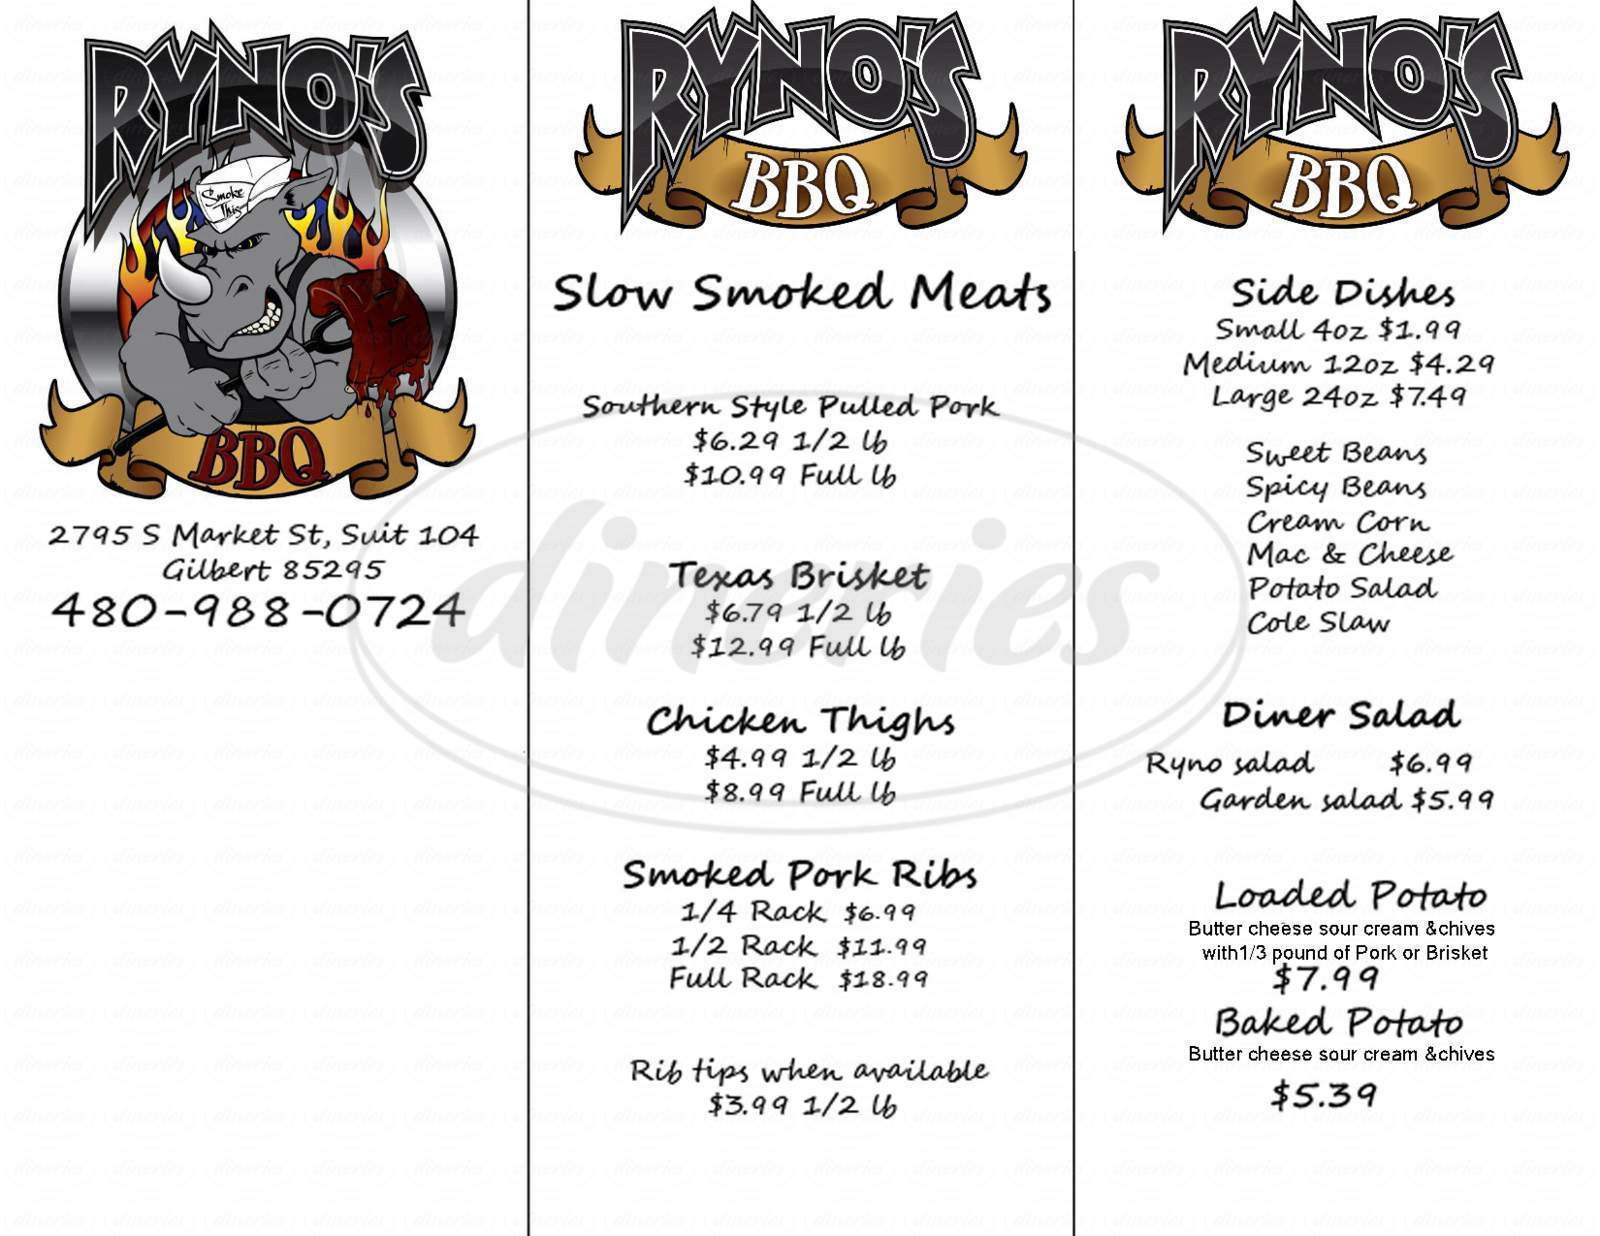 menu for Ryno's BBQ